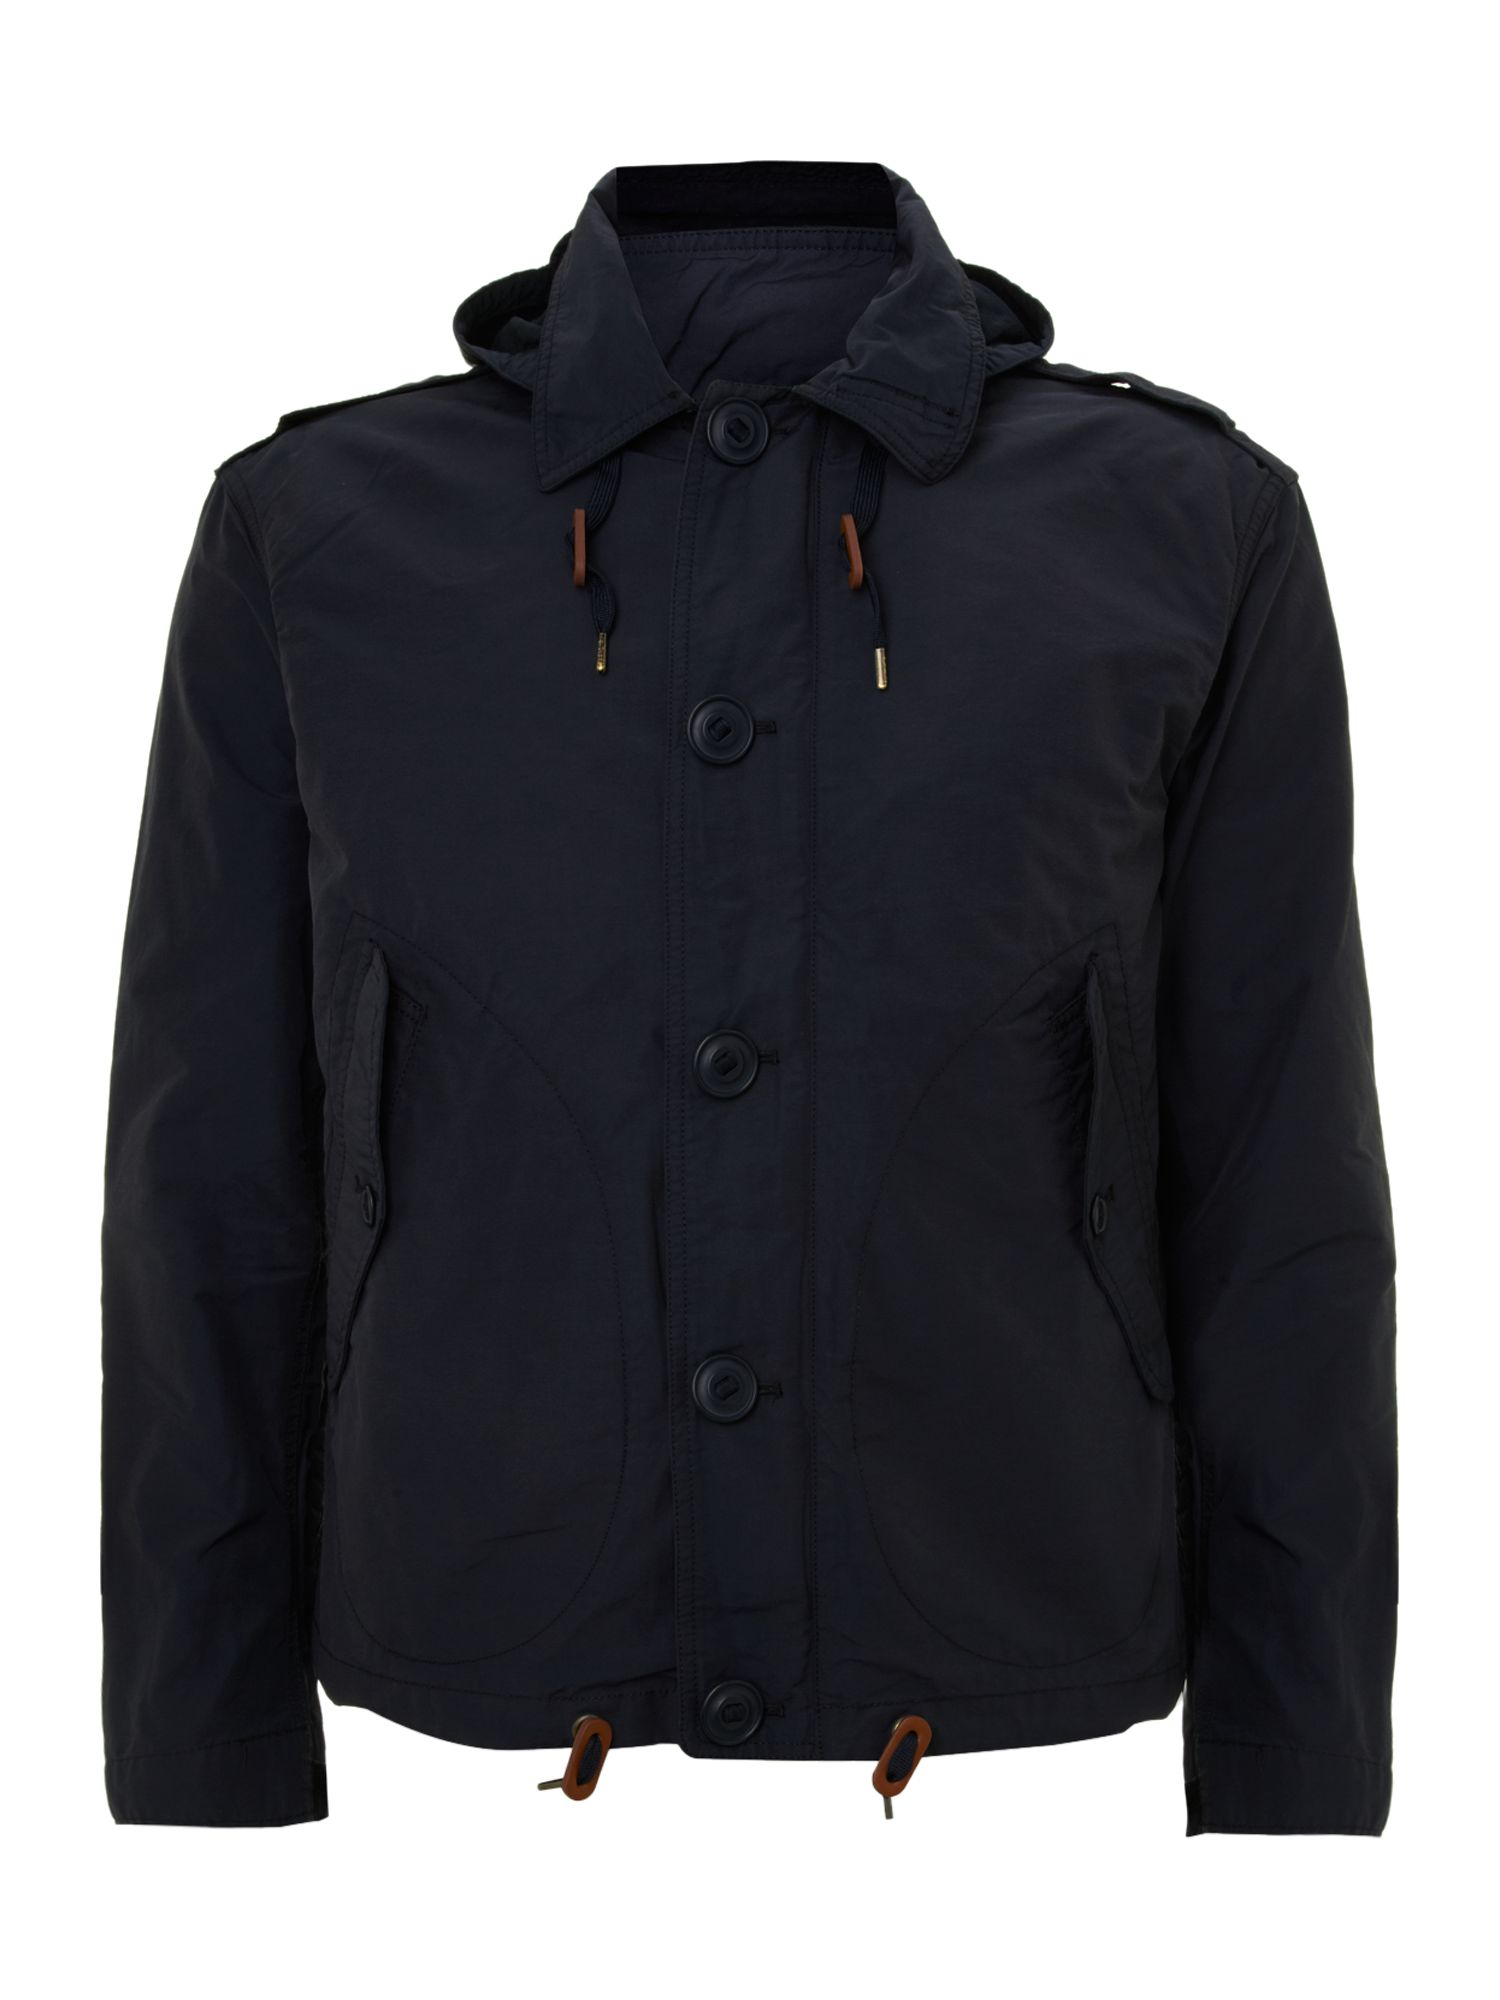 Continental hooded windbreaker coat